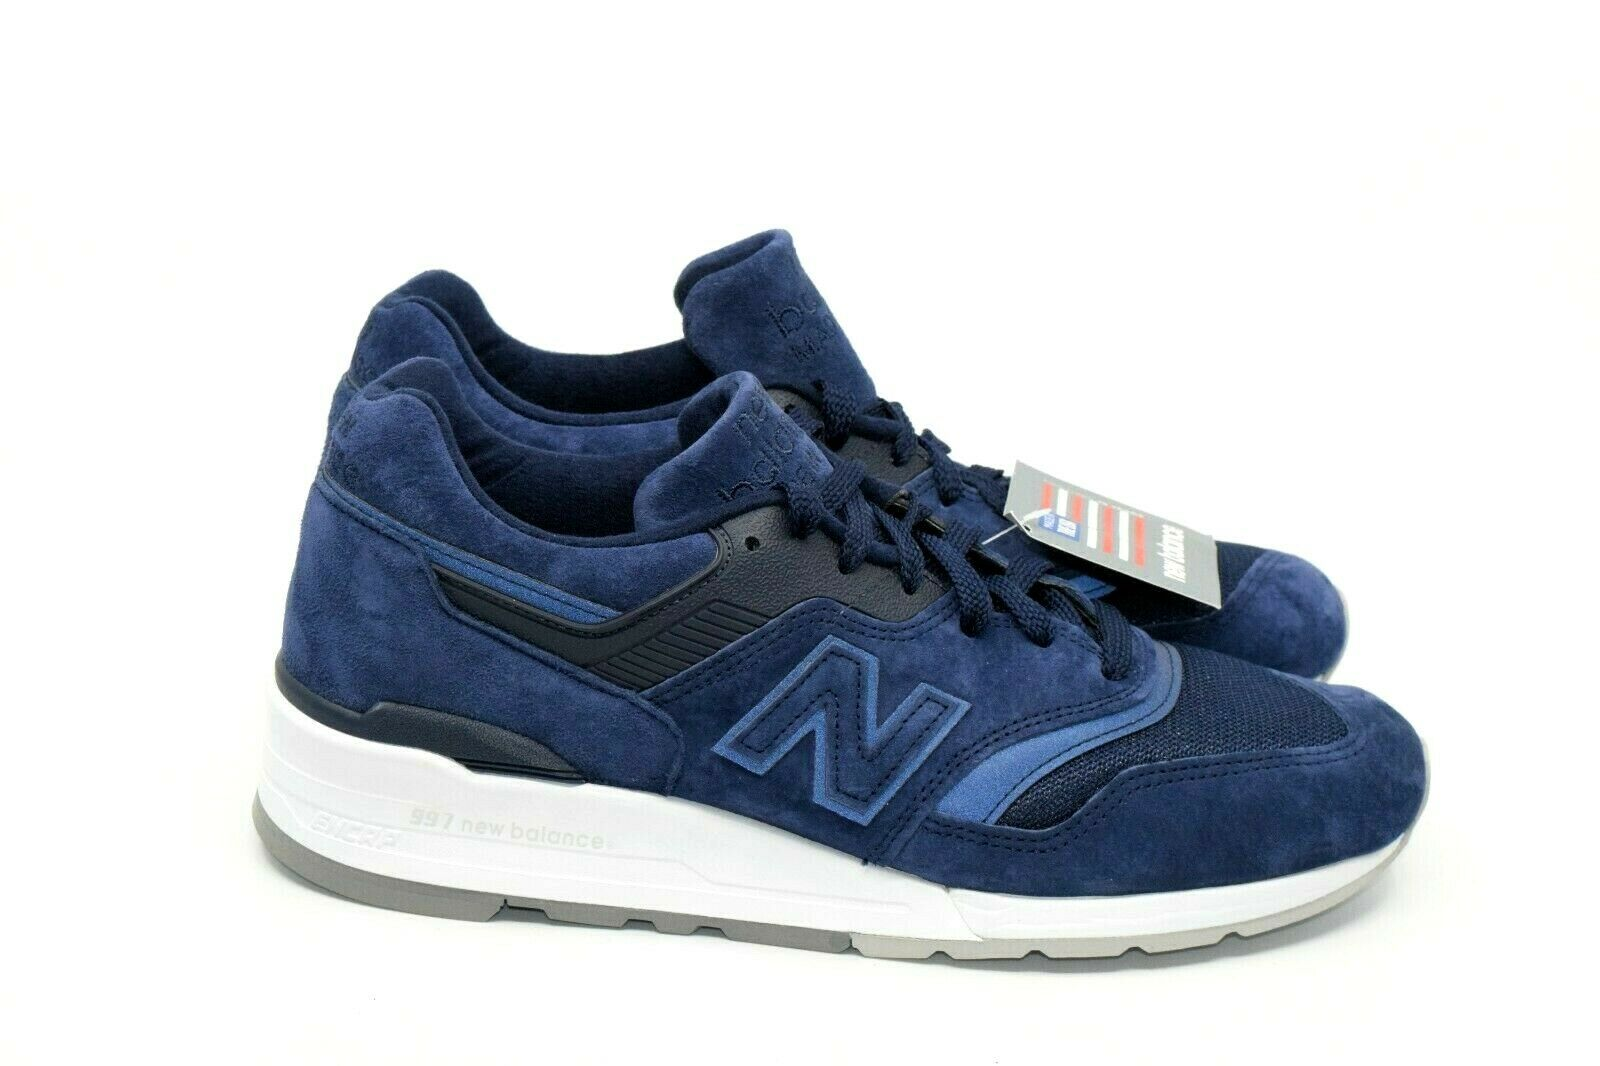 New Balance Men 997 color Spectrum Navy Size 11D  M997CO